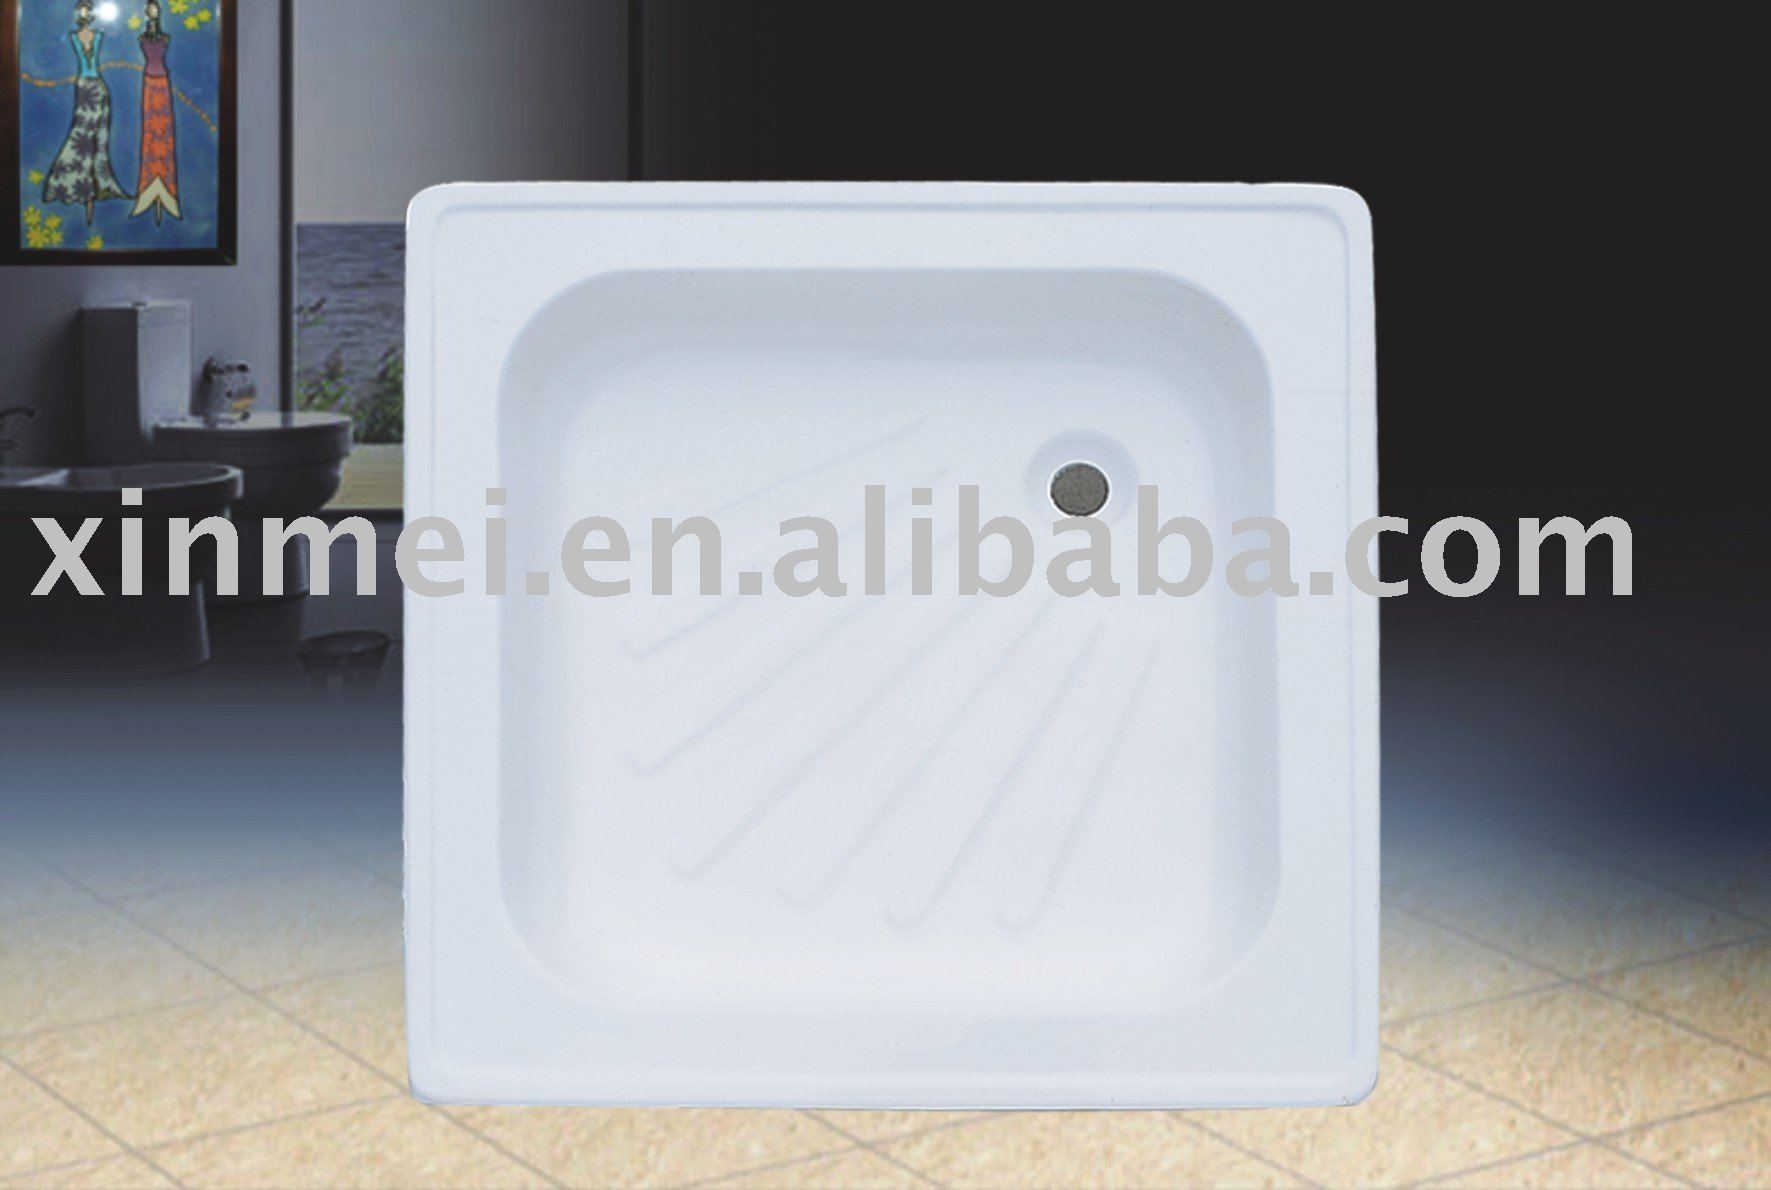 Acrylic Shower System Wholesale, Shower System Suppliers - Alibaba